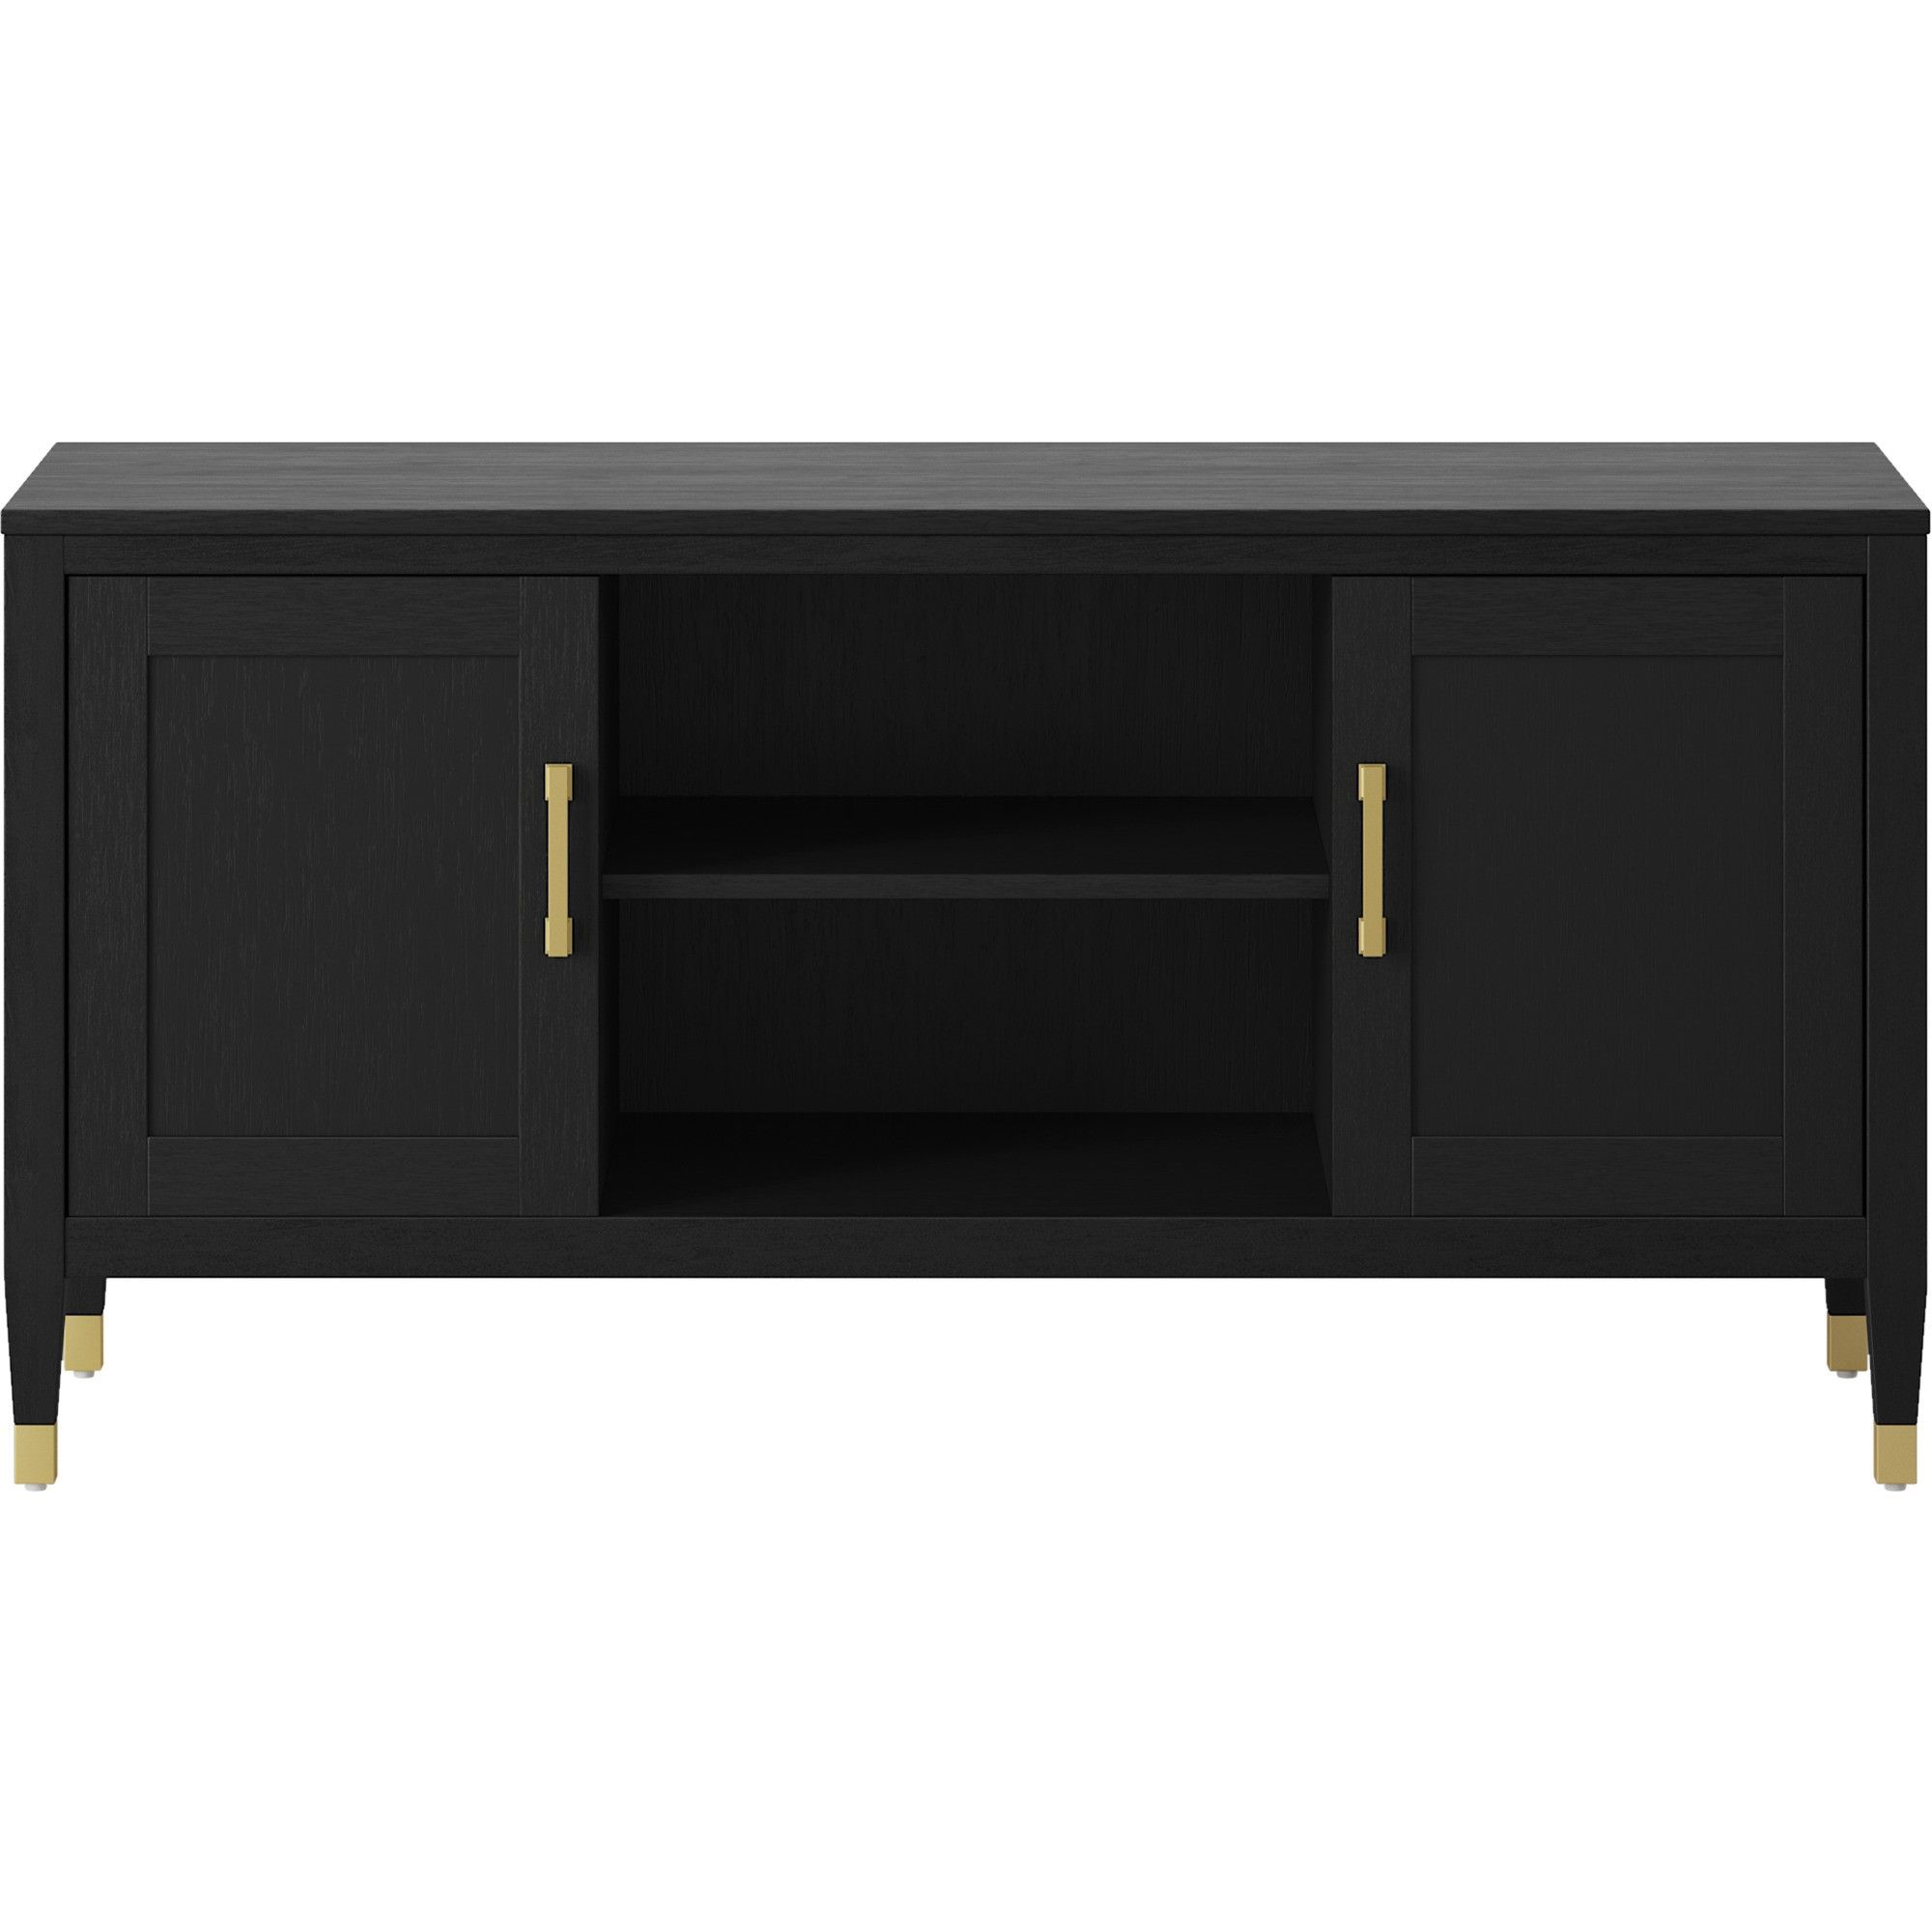 buy online cfcef a9bd7 Duxbury Black TV Stand with Gold Feet - Threshold | Products ...